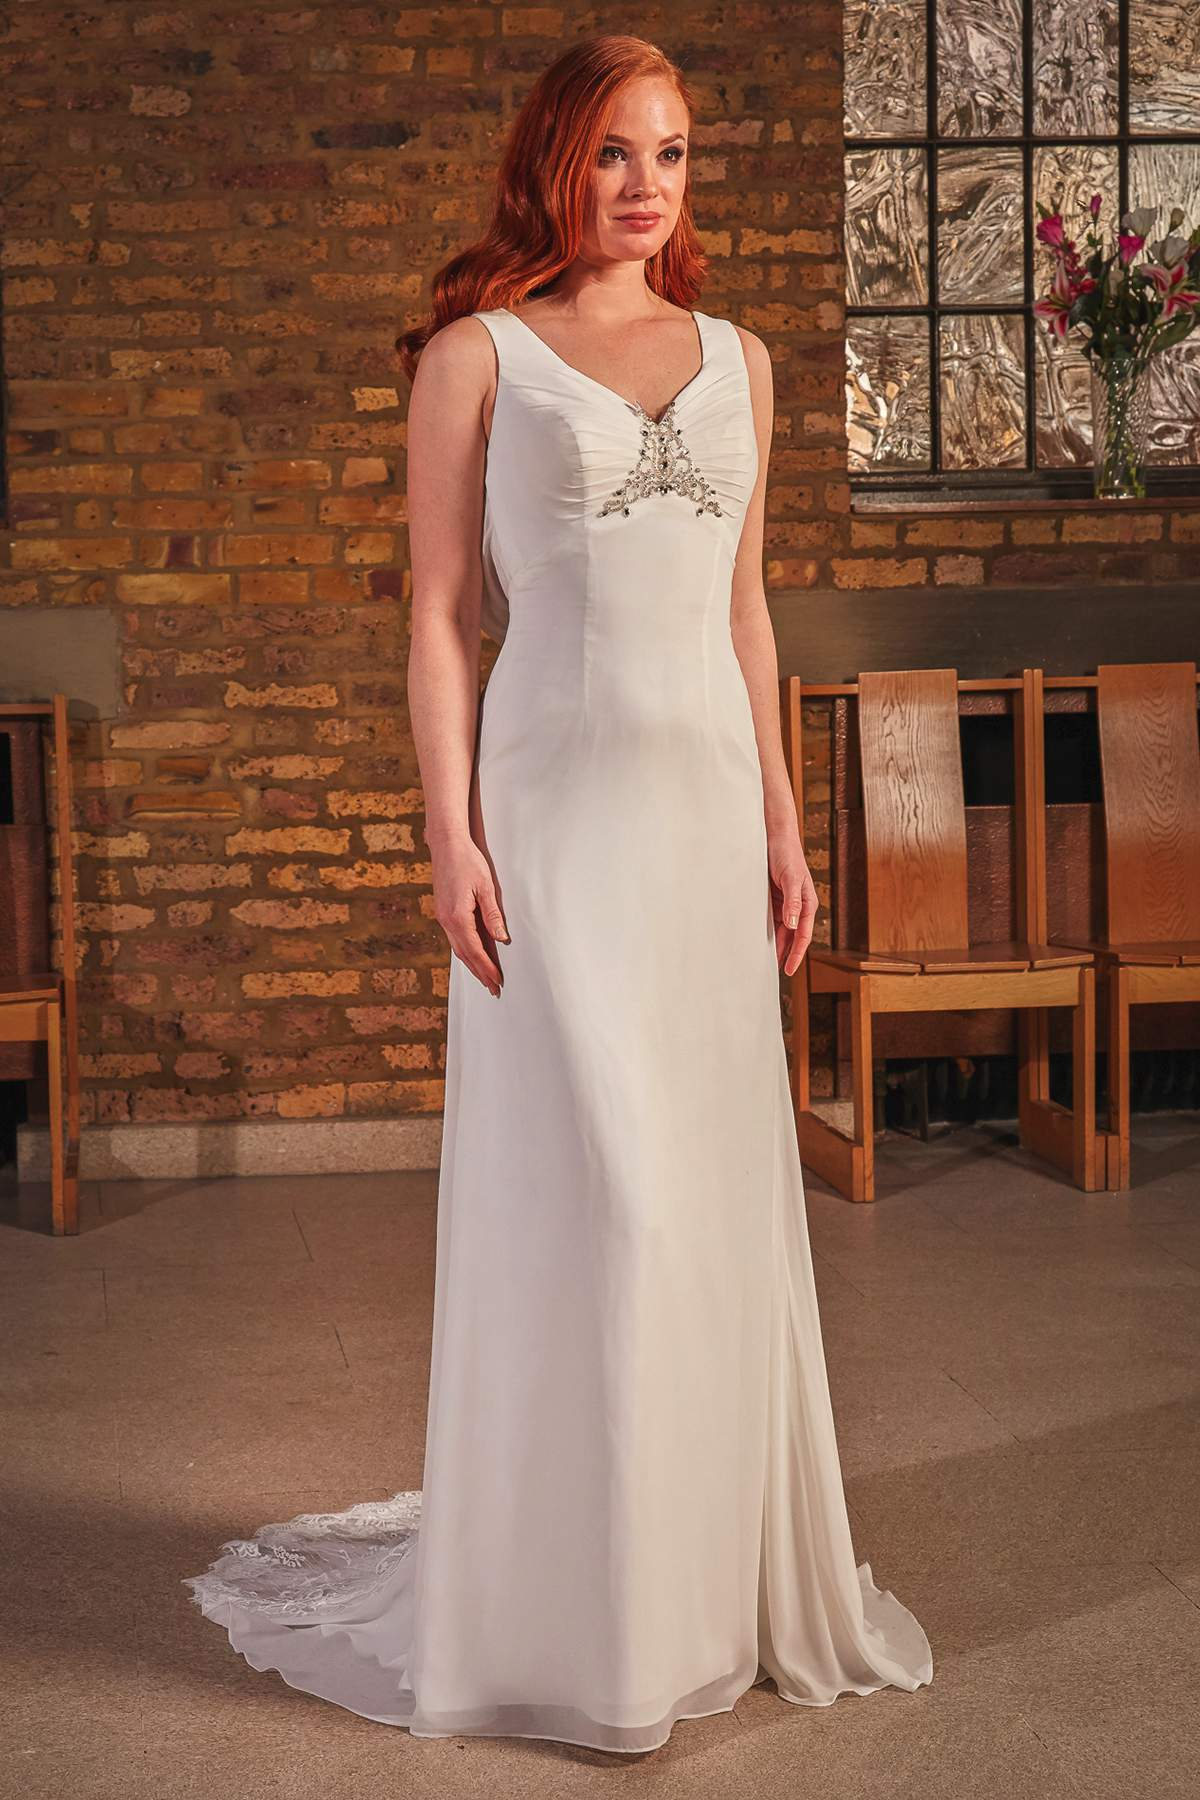 Style 1700733 by LQ Designs - Find Your Dream Dress